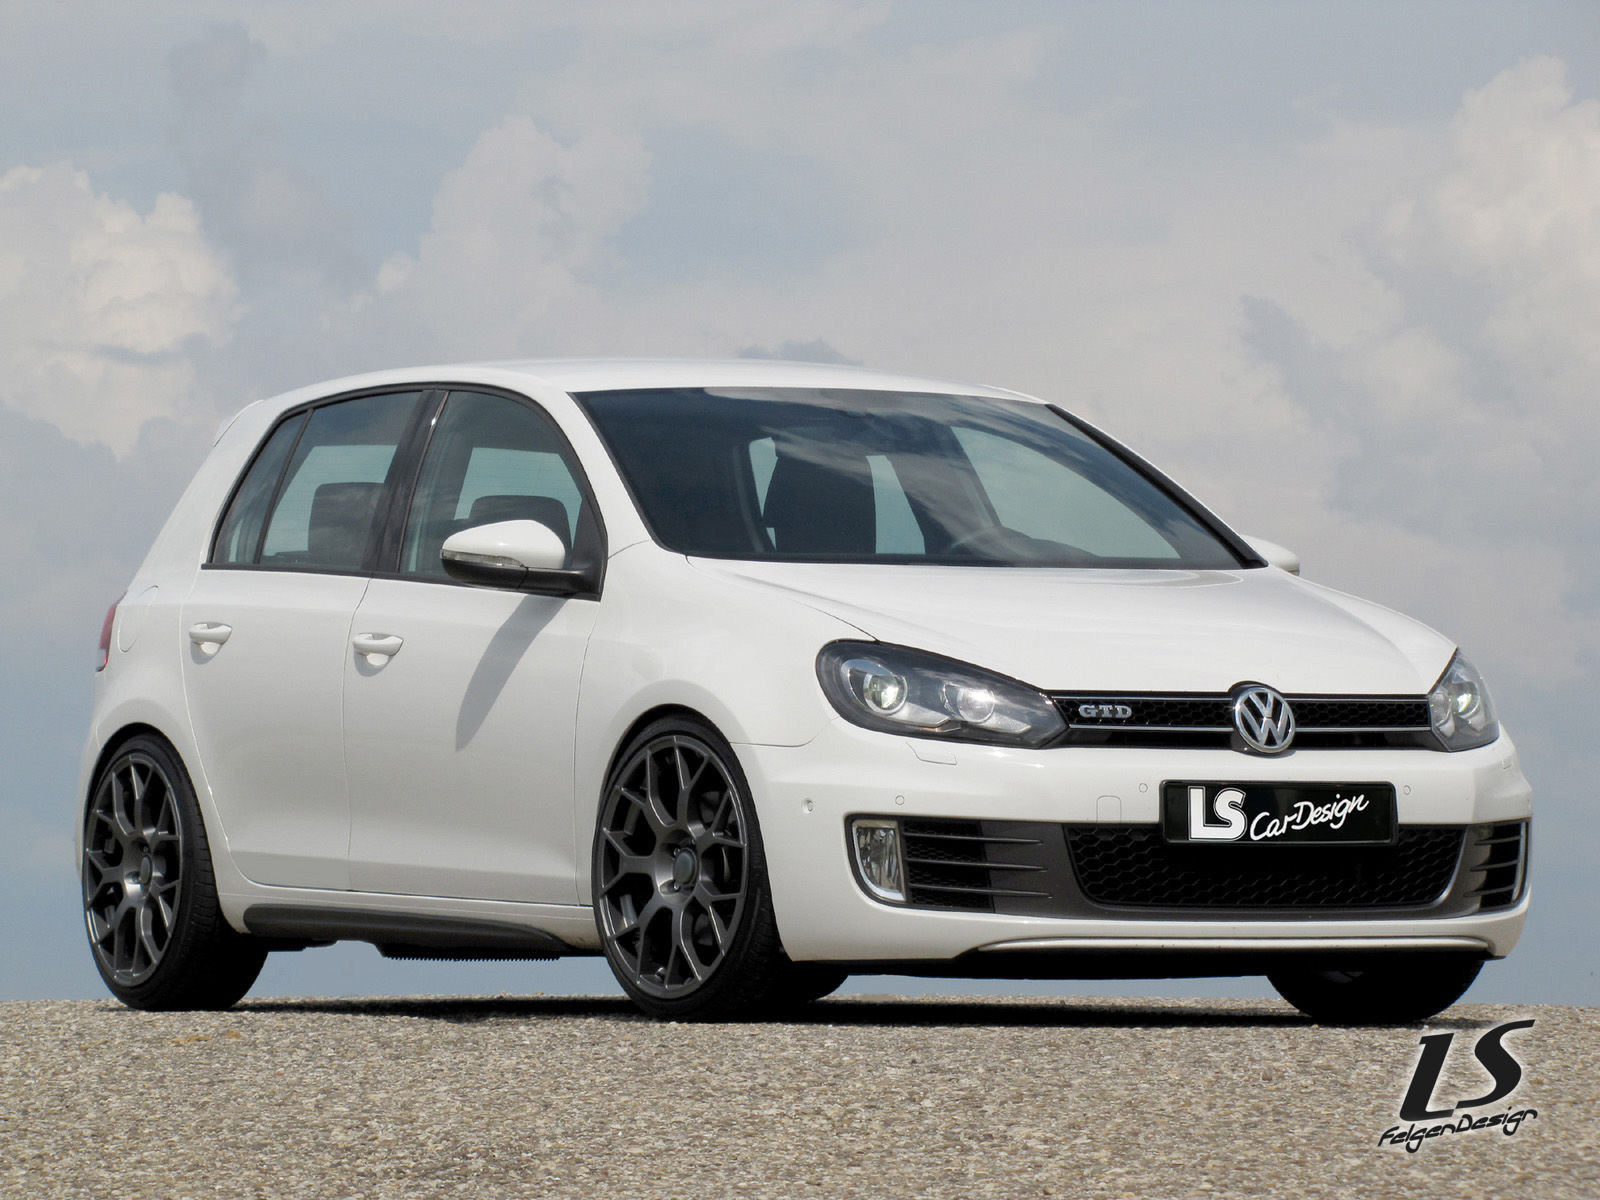 golf 6 gtd vw golf 6 gtd tweaked by mtm autoevolution vw. Black Bedroom Furniture Sets. Home Design Ideas